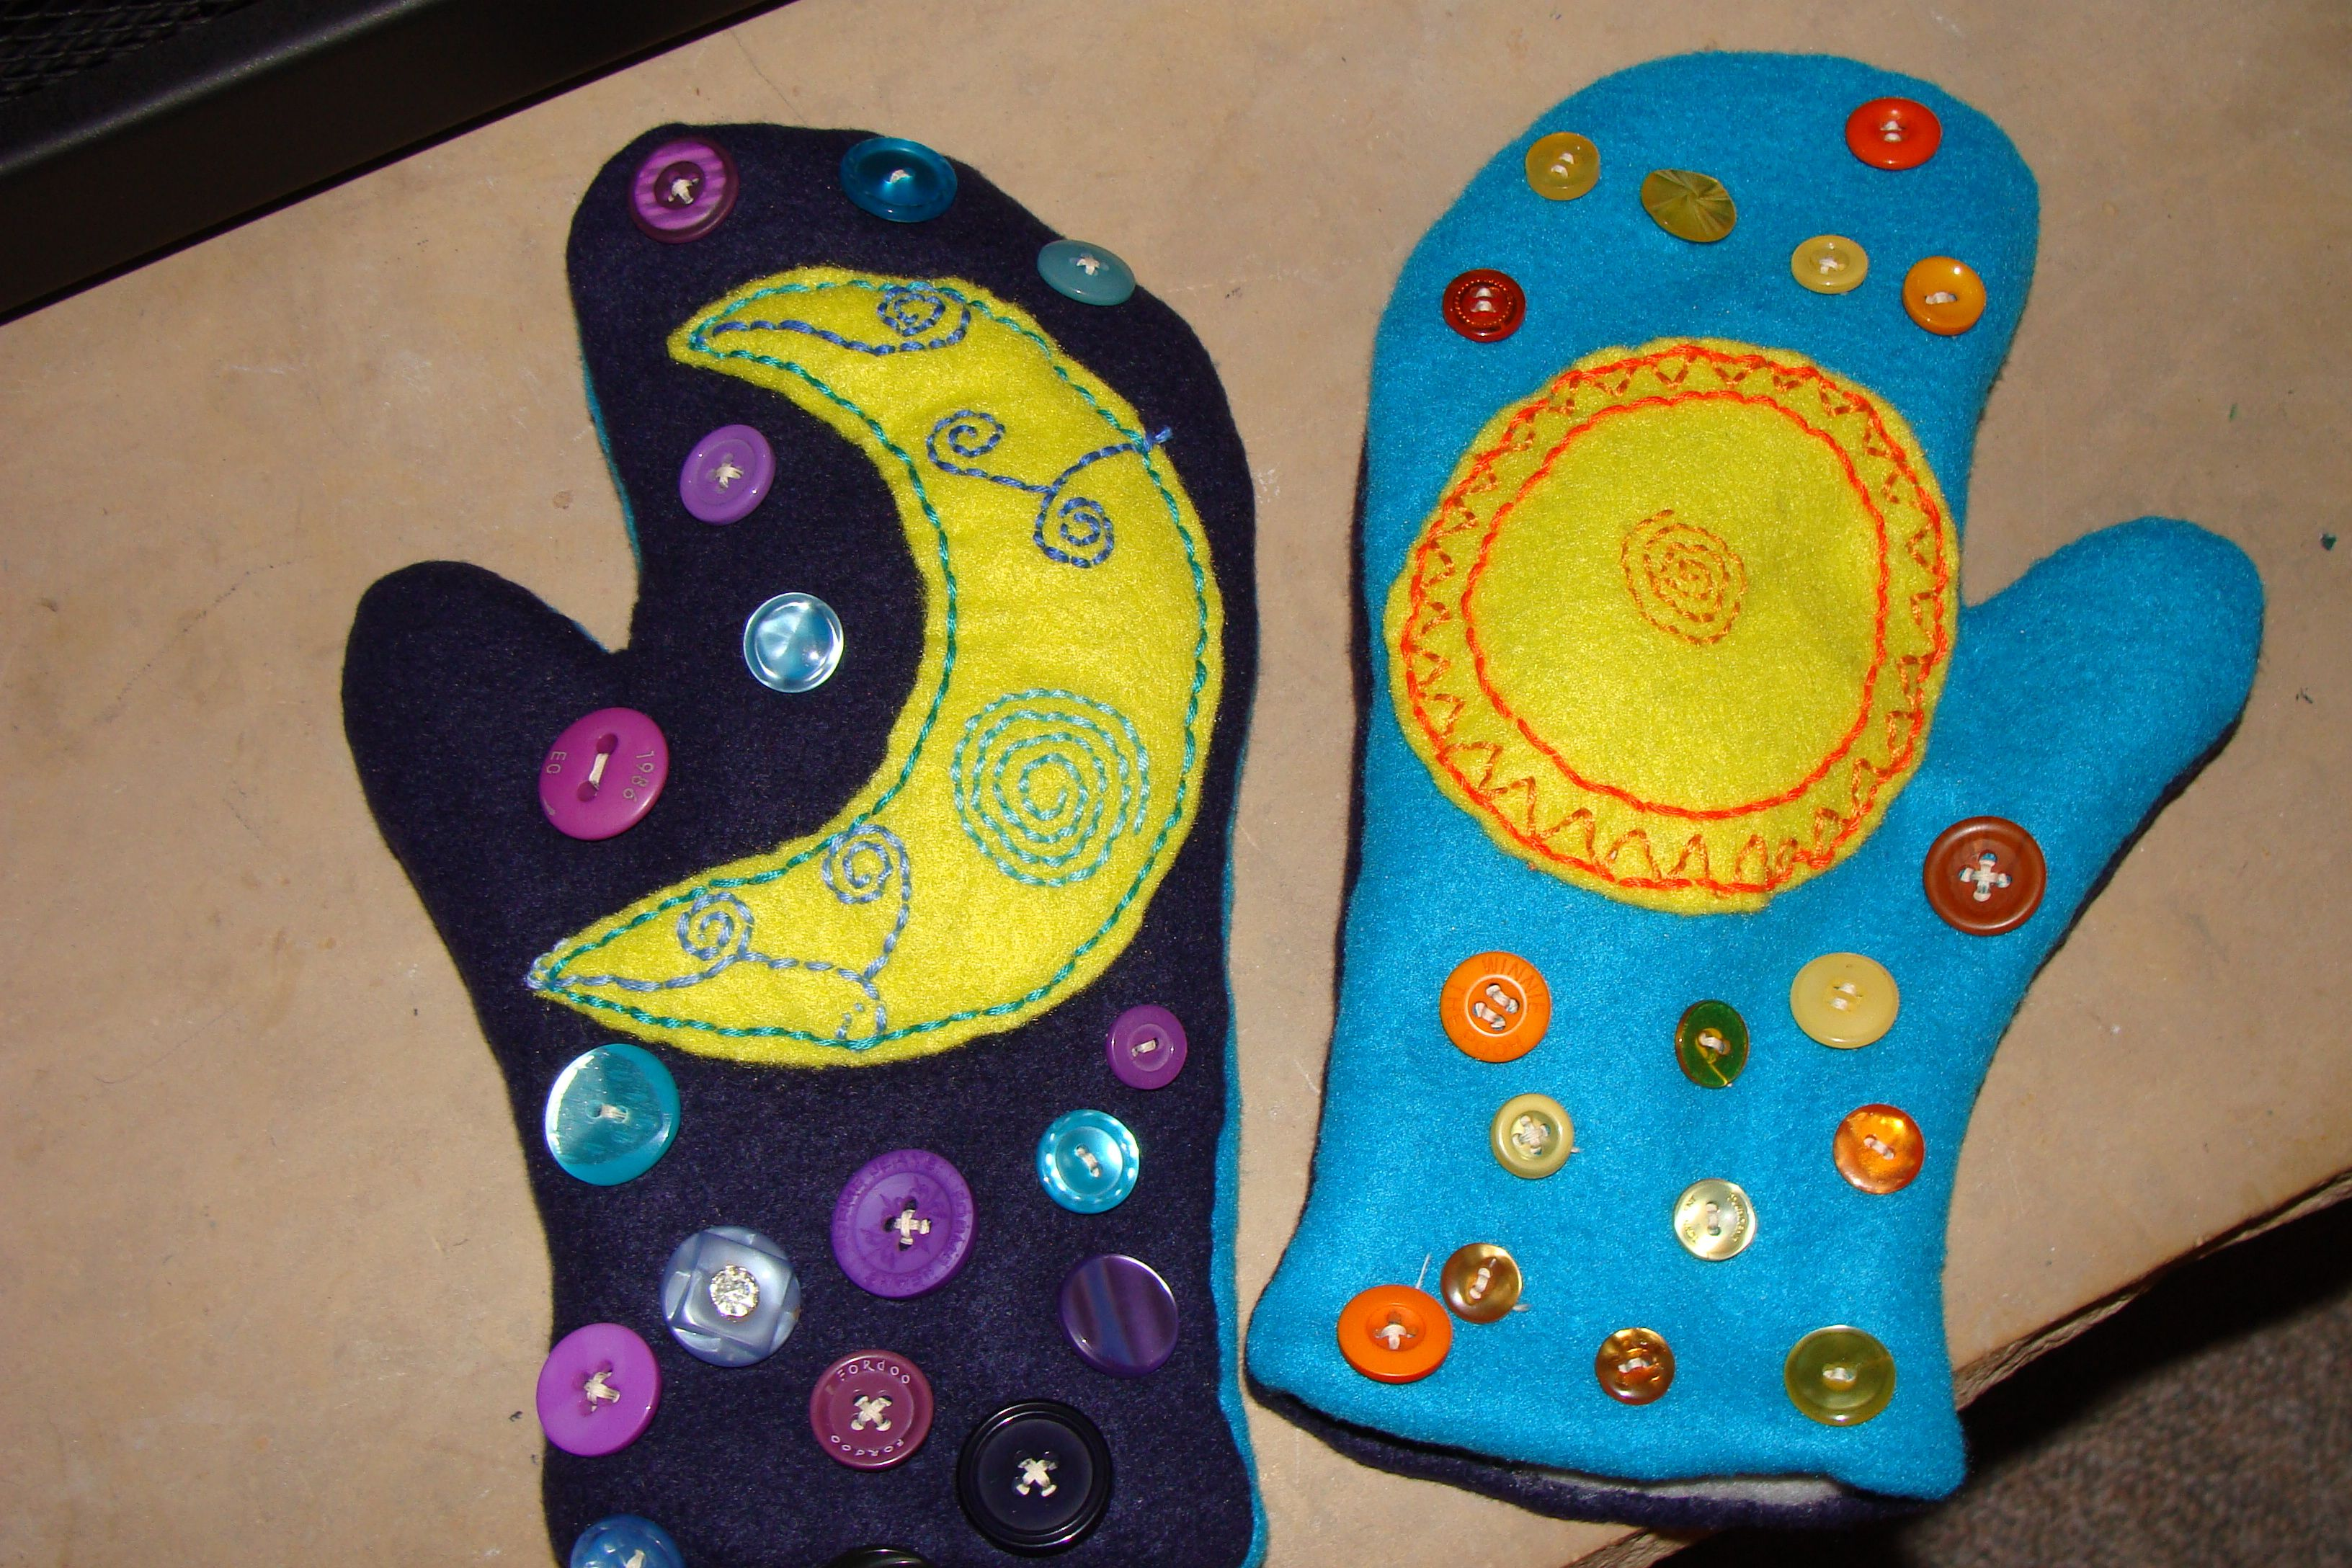 Sun and moon mittens hand made by yours truly. #sunandmoon #buttons #mittens #handmade